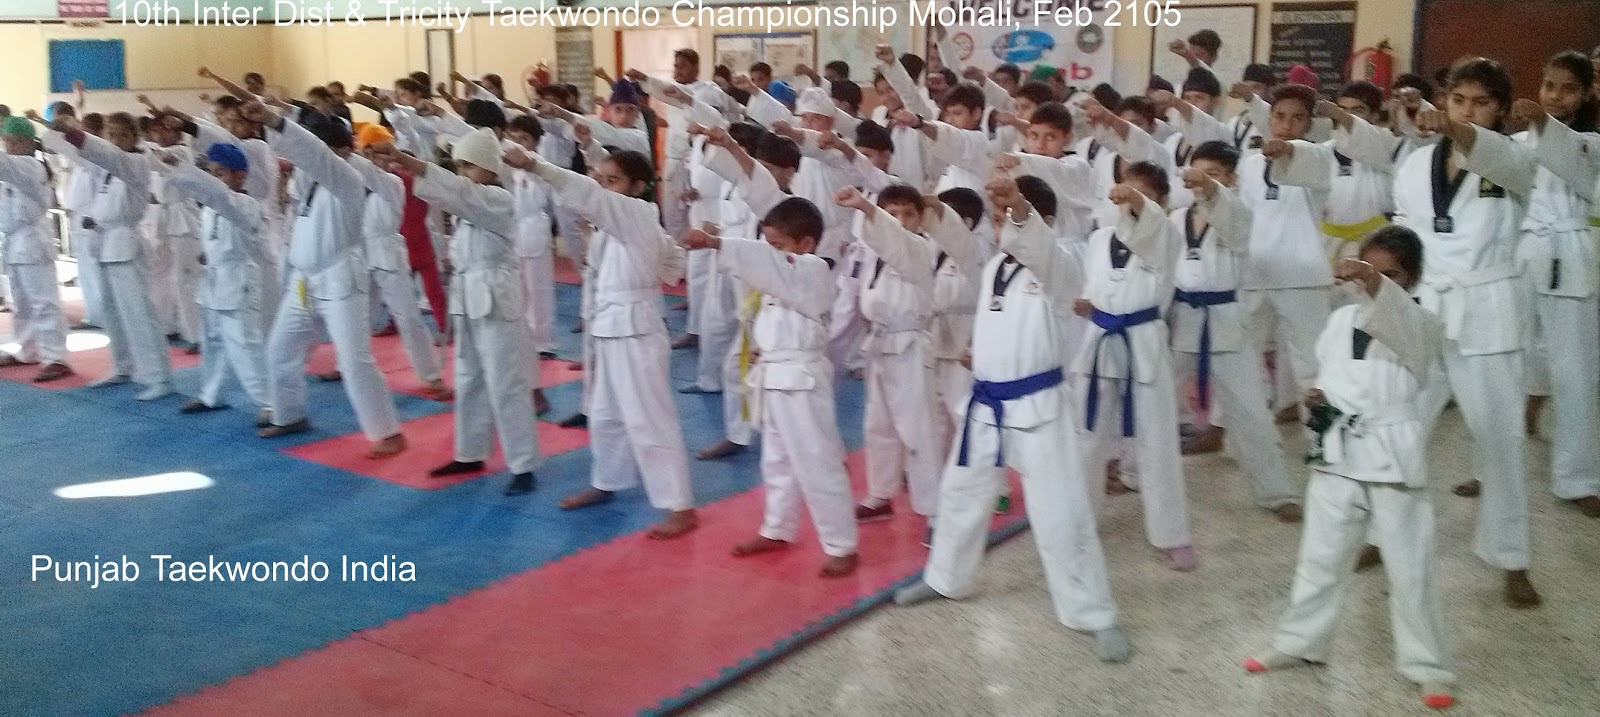 10th Inter District & Tricity Taekwondo Championship at Guru Nanak VBT Polytechnic, Martial Art Taekwondo 'Korean Judo Karate' Self-defence & Fitness Training Academy, Clubs, Classes, Association, Centers in Mohali near Chandigarh, Punjab India, World,  Tkd of Master Er. Satpal Singh Rehal, Garhshankar, Kot Maira, Hoshiarpur, Jalandhar, Patiala, Ferozepur, Bathinda, Ludhiana, Sangrur, Kapurthala, Moga, Fazilka, Ropar, Fatehgarh Sahib, Gurdaspur, Pathankot, Amritsar, Taran Taran, Patti, Faridkot, Nawanshahar